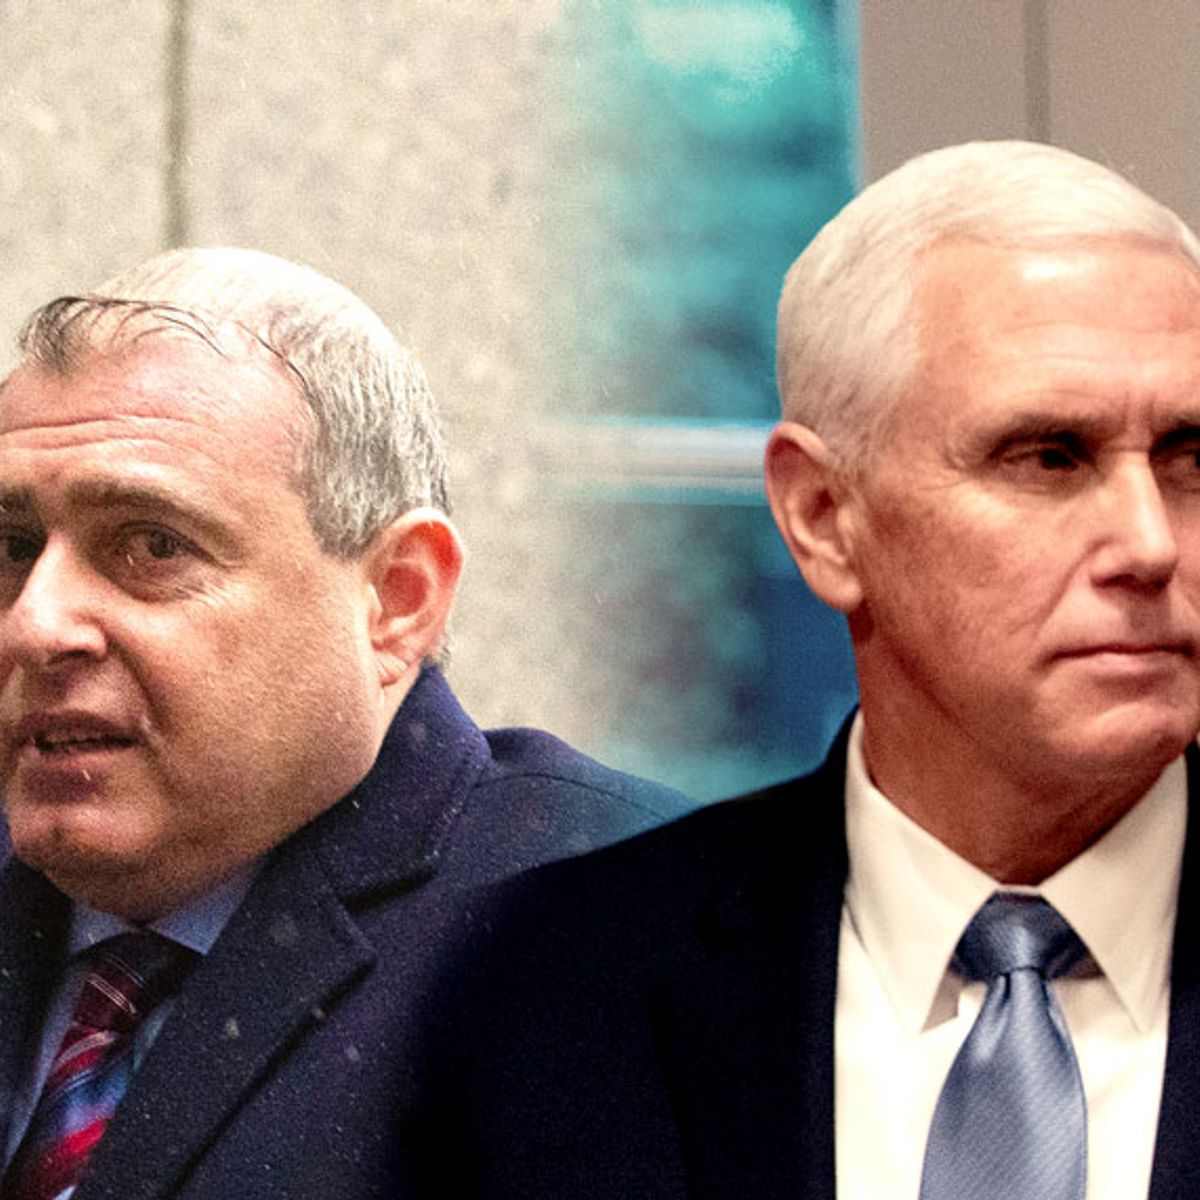 Attorney shares video of Mike Pence with Lev Parnas after vice president denies knowing his client